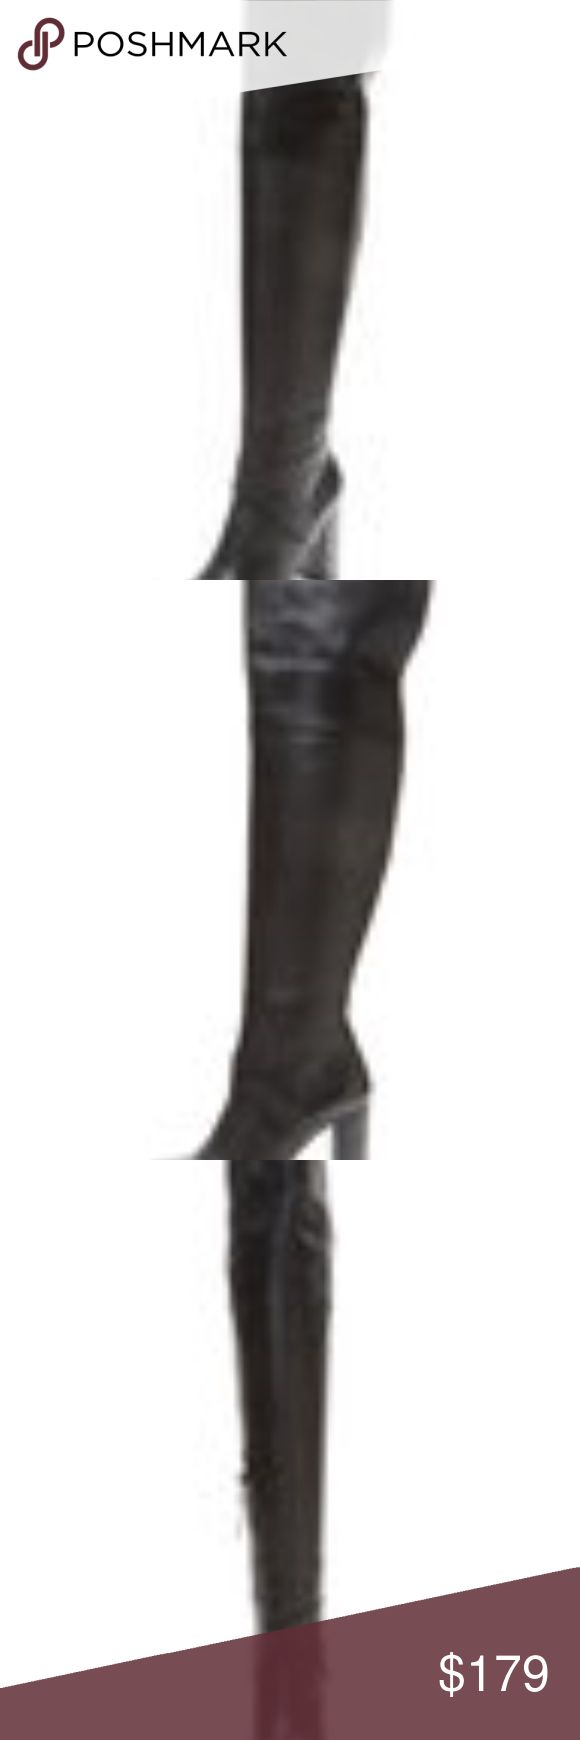 """Ava and Alden - High Heel Over the knee boot new! Description: High heel boot  Leather upper  Front criss-cross strap  Split detail at cuffs  Side zip closure  Man-made sole  Measurements: Heel height 3¾"""", shaft height 20"""", calf circumference 14½"""" Material: Leather upper with man-made sole Ava & Aiden Shoes Over the Knee Boots"""